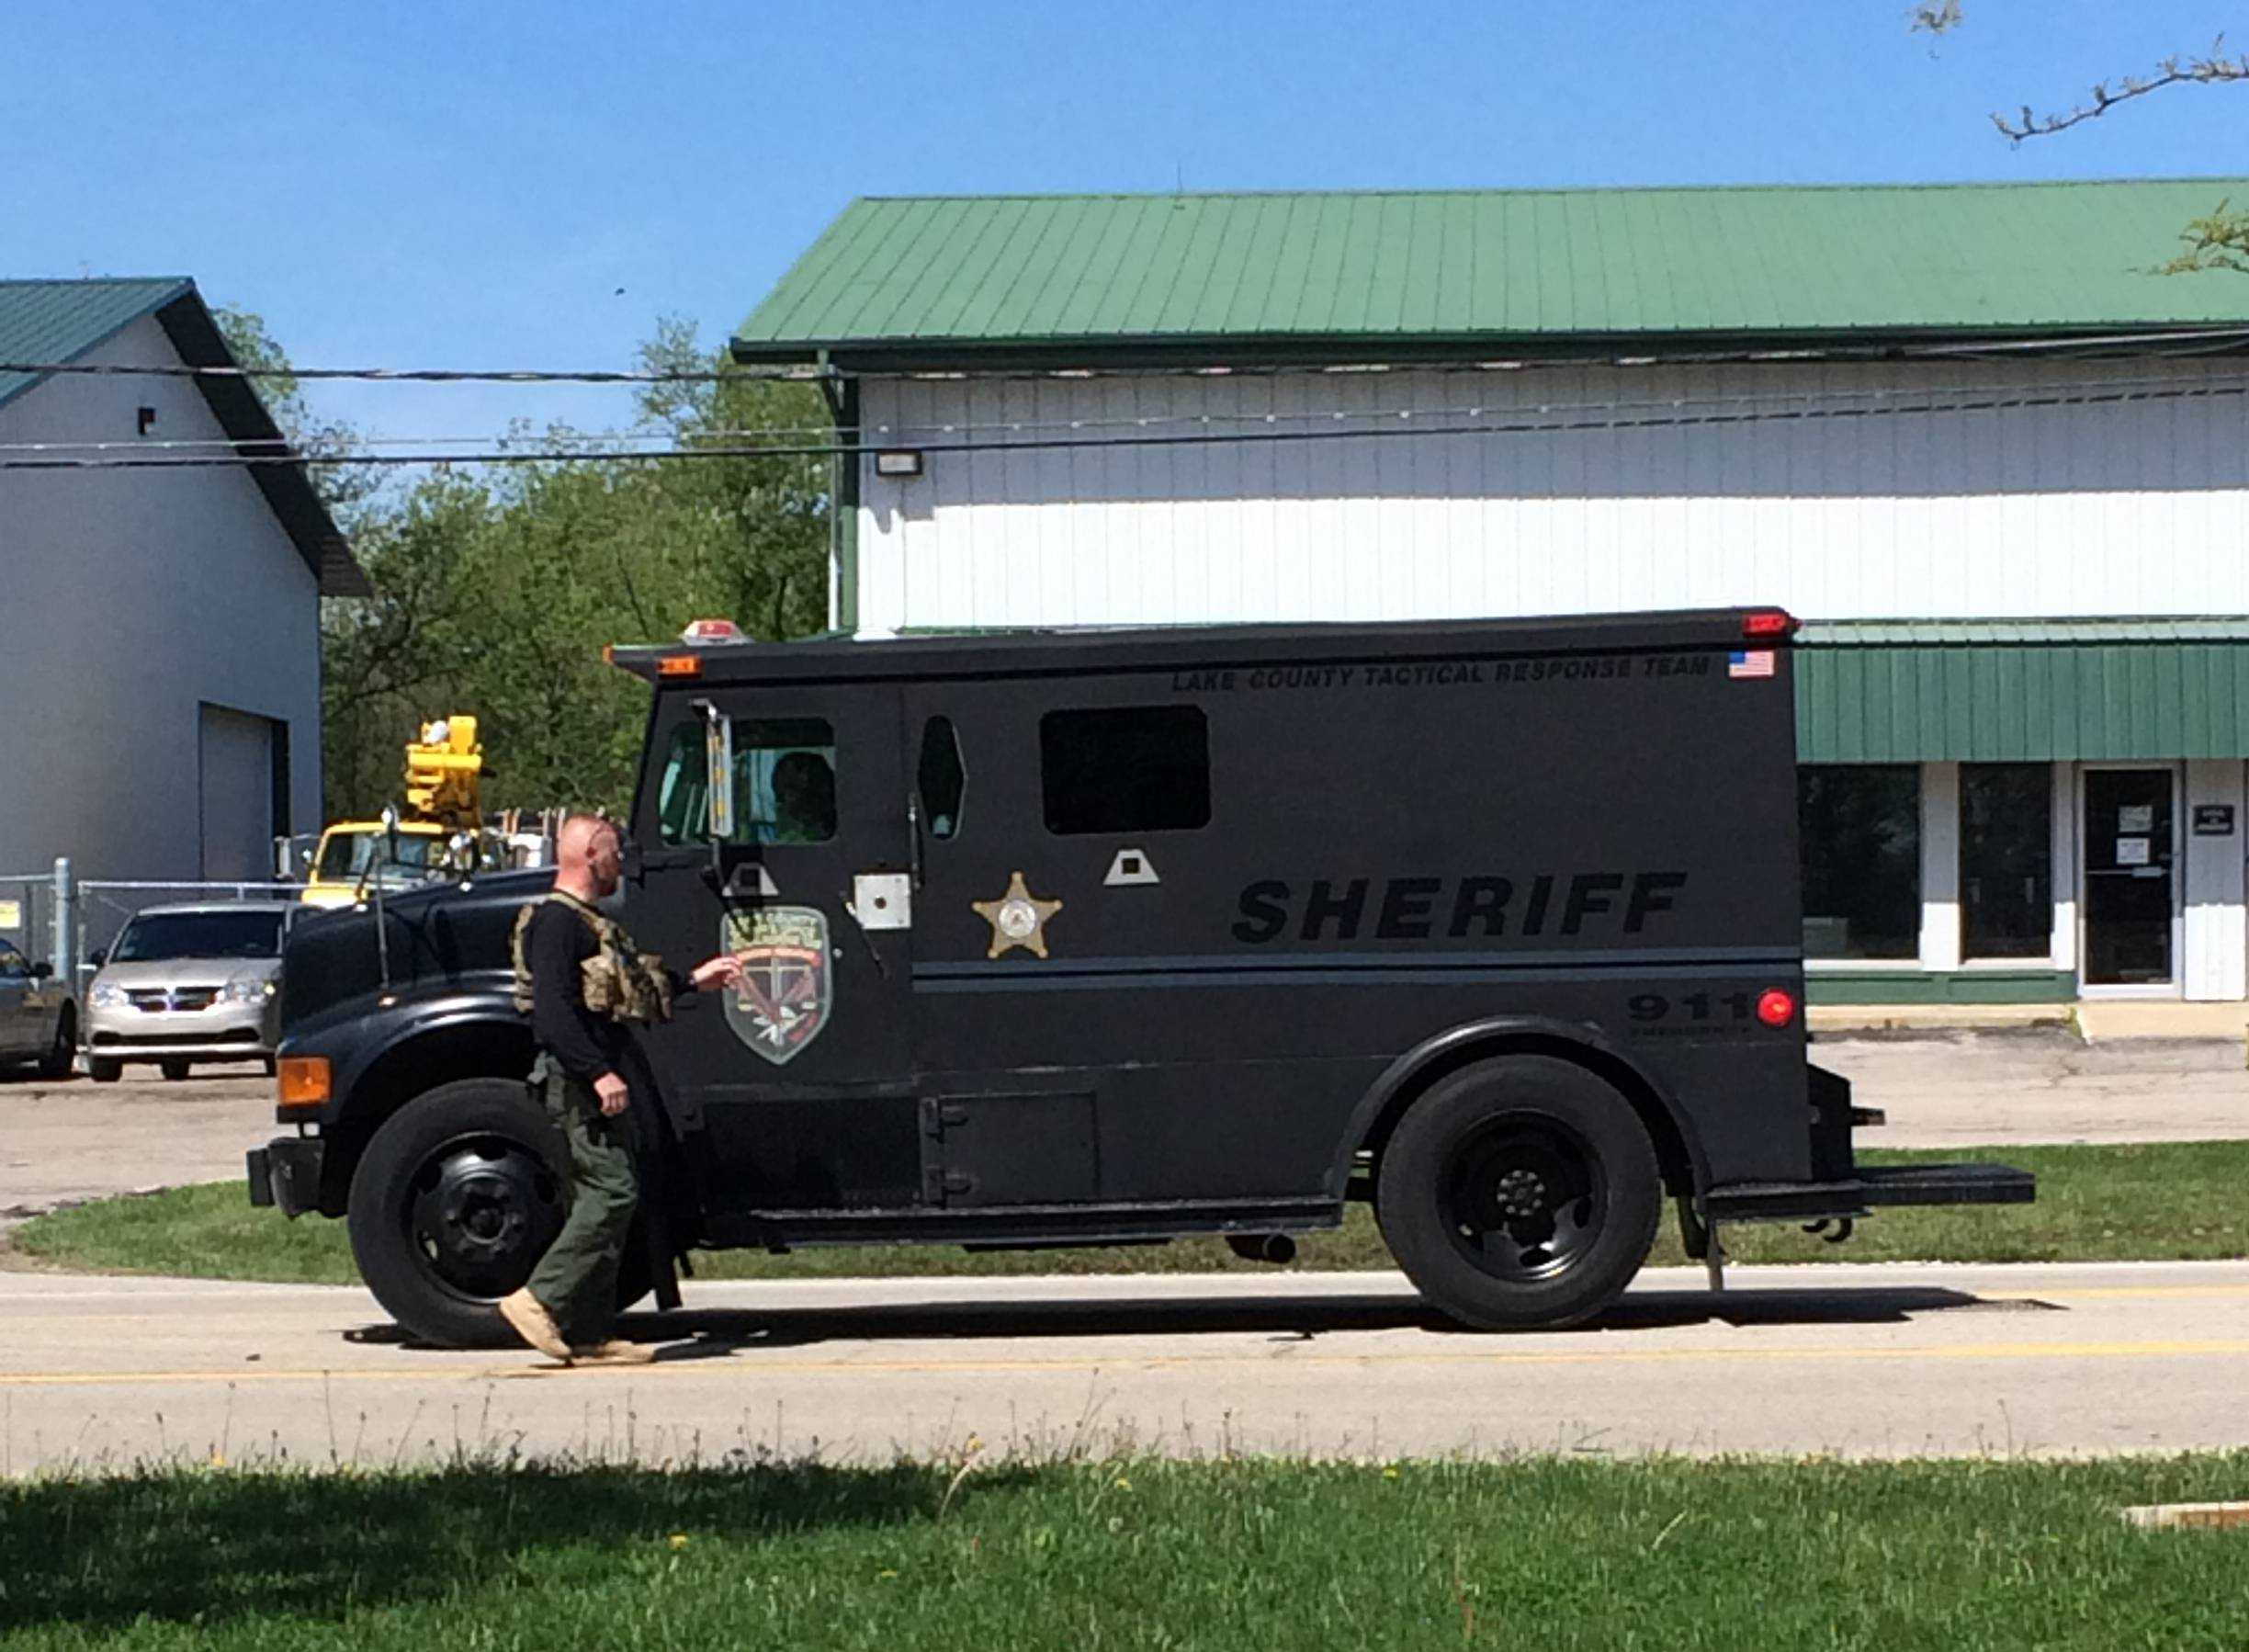 Lake County tactical response team vehicles outside a single-family house in Antioch Township that police surrounded in search of a man and woman who were involved in a confrontation with police early Wednesday, authorities said.